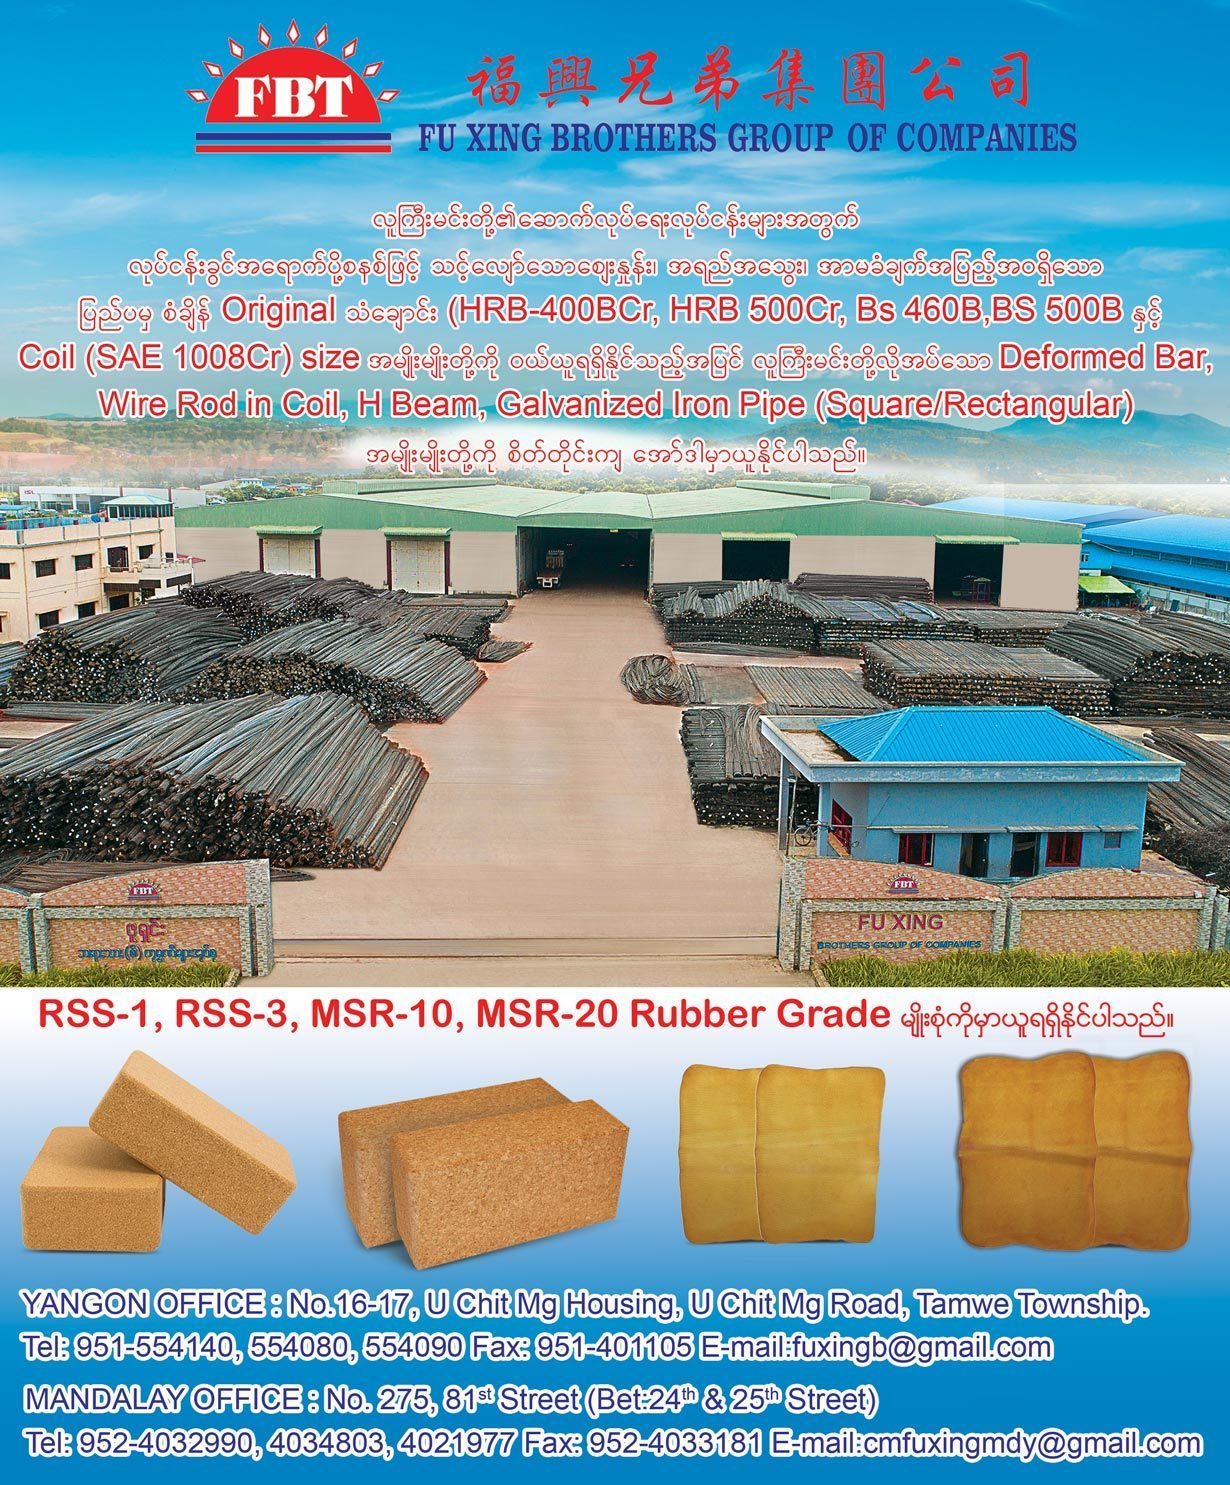 Fu-Xing-Brothers-Group-Of-Companies_Construction-Materials_(B)_1034.jpg